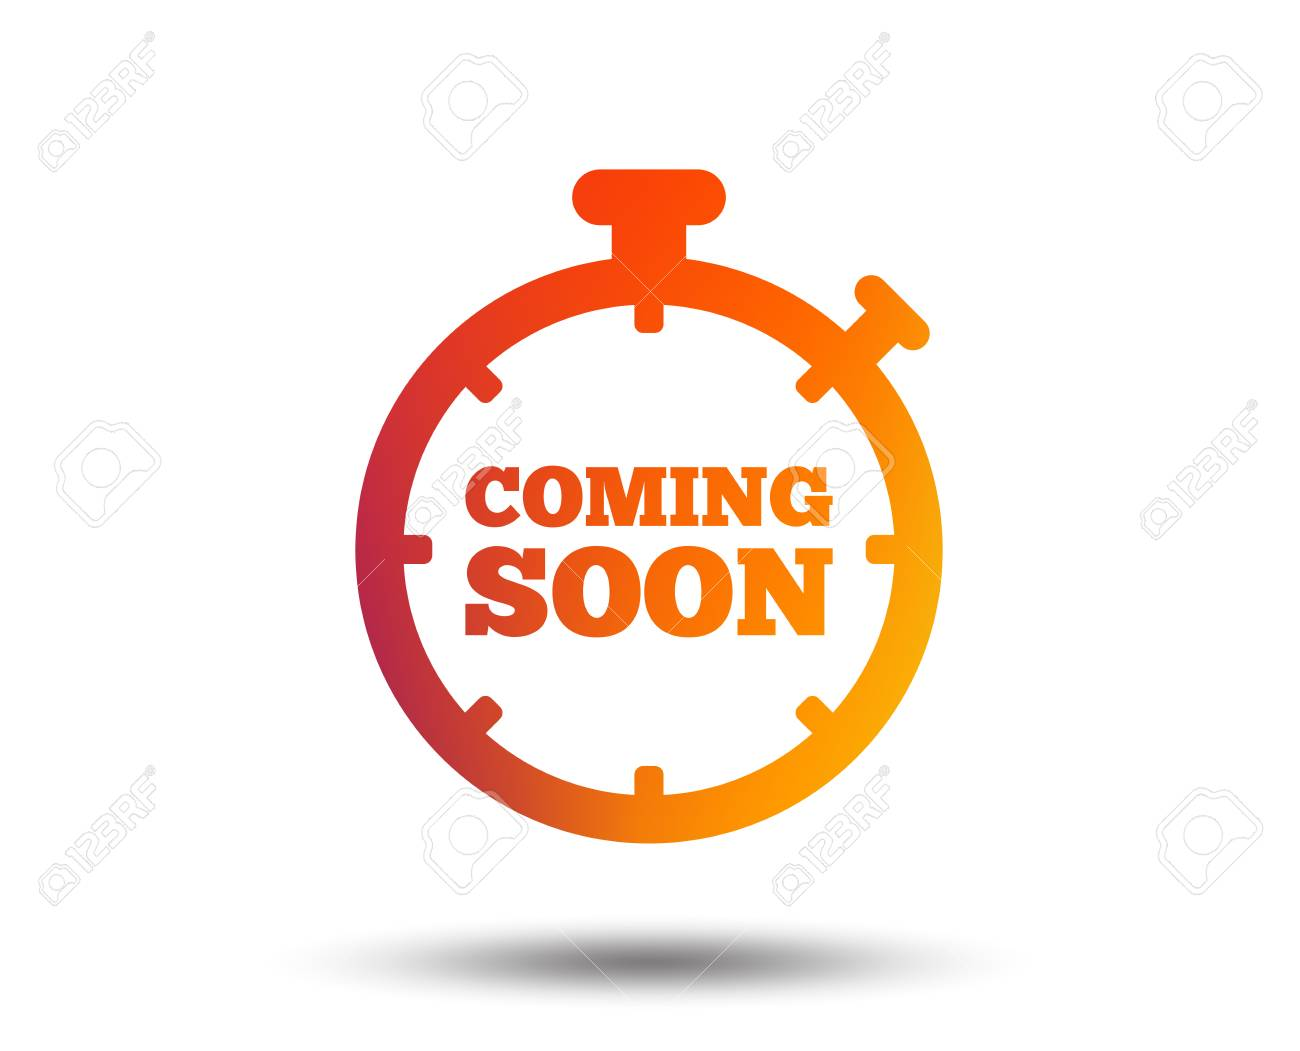 Coming Soon Sign Icon Promotion Announcement Symbol Blurred Royalty Free Cliparts Vectors And Stock Illustration Image 96848113